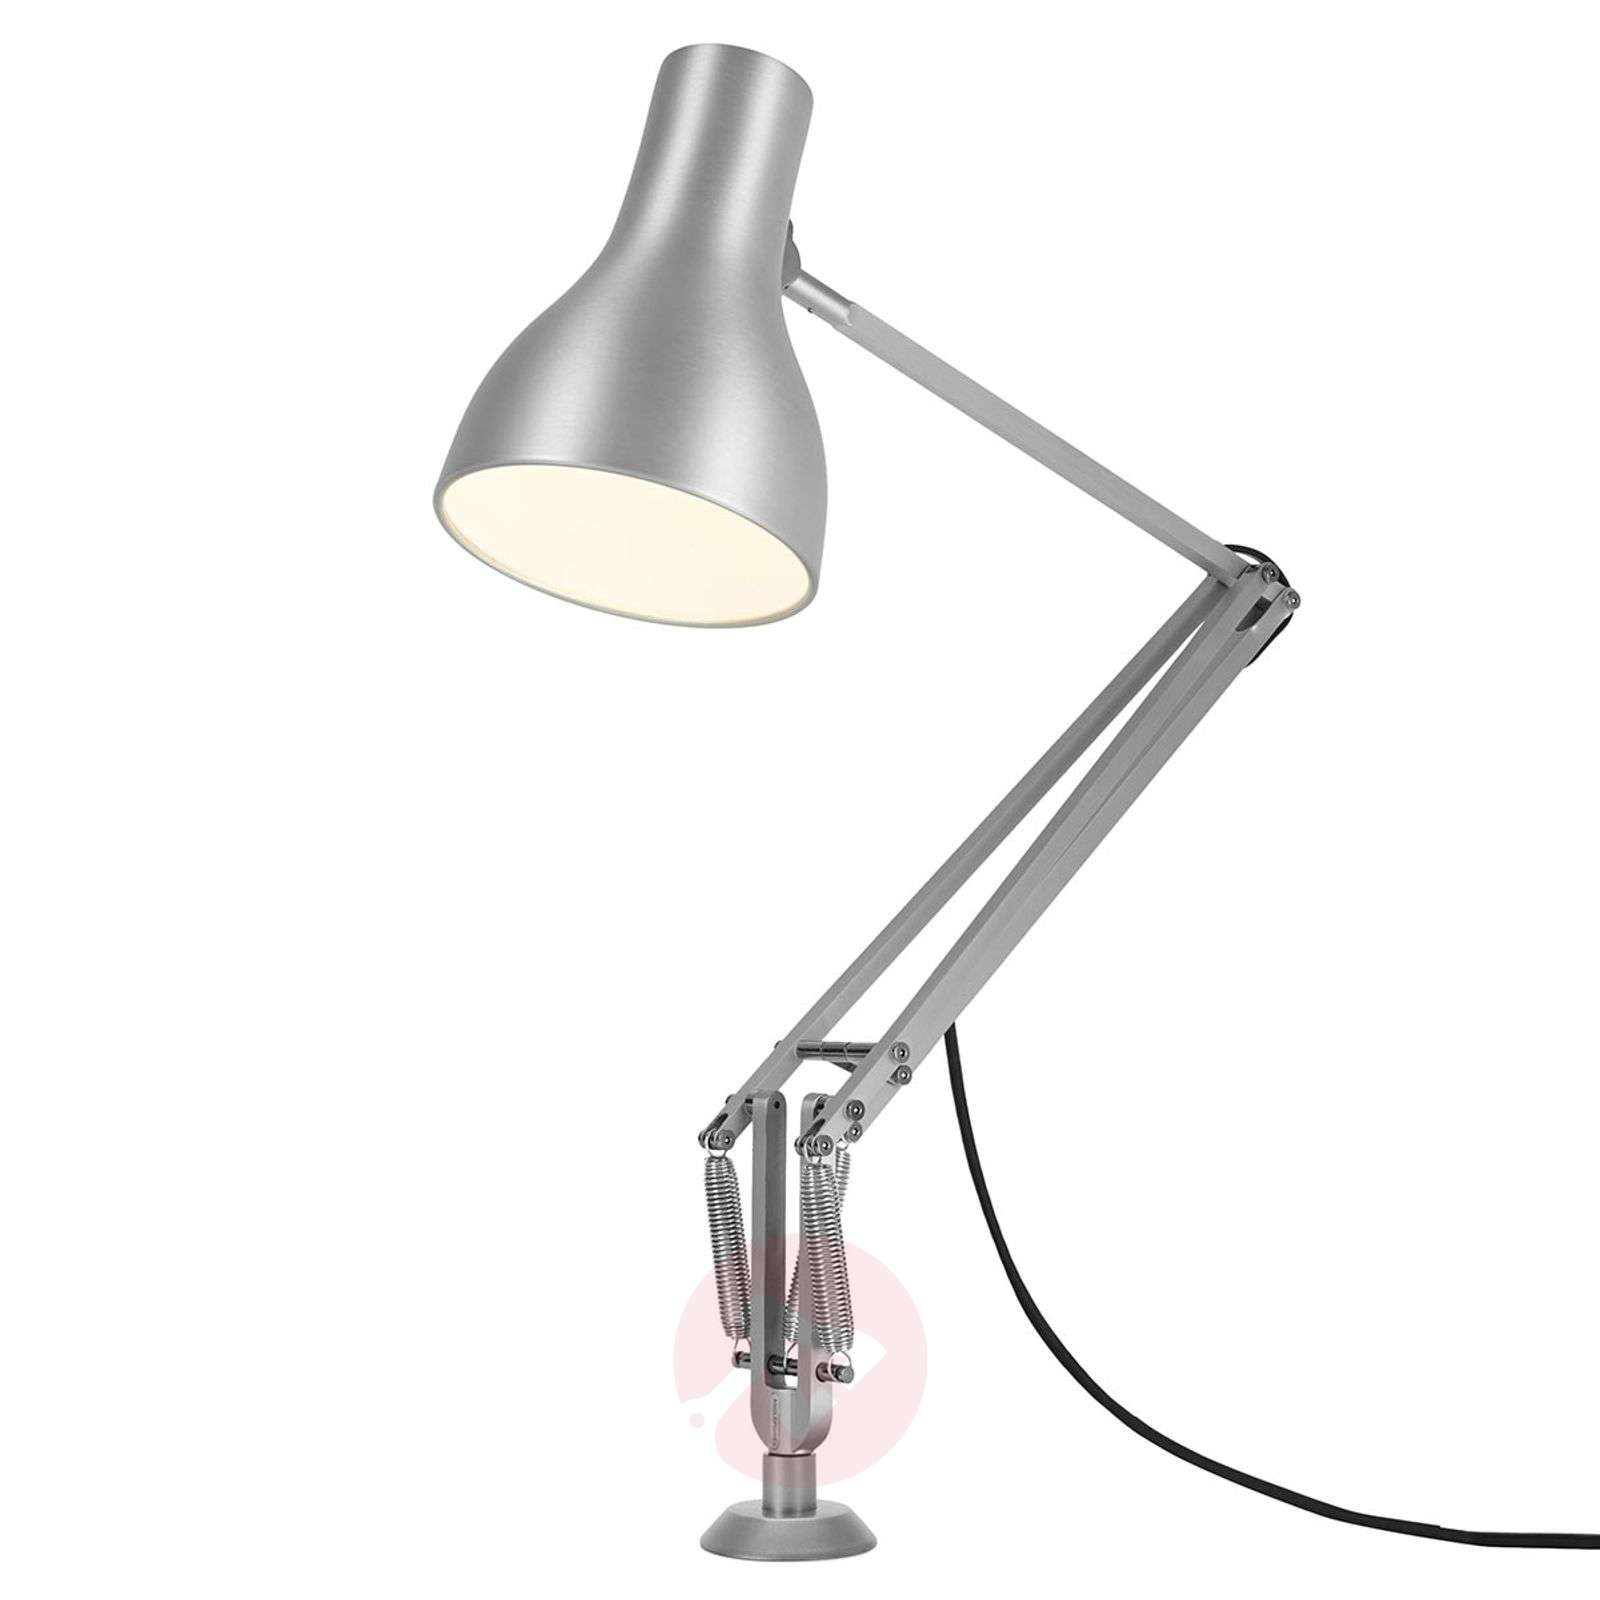 Anglepoise Type 75 table lamp screw base-1073024X-01